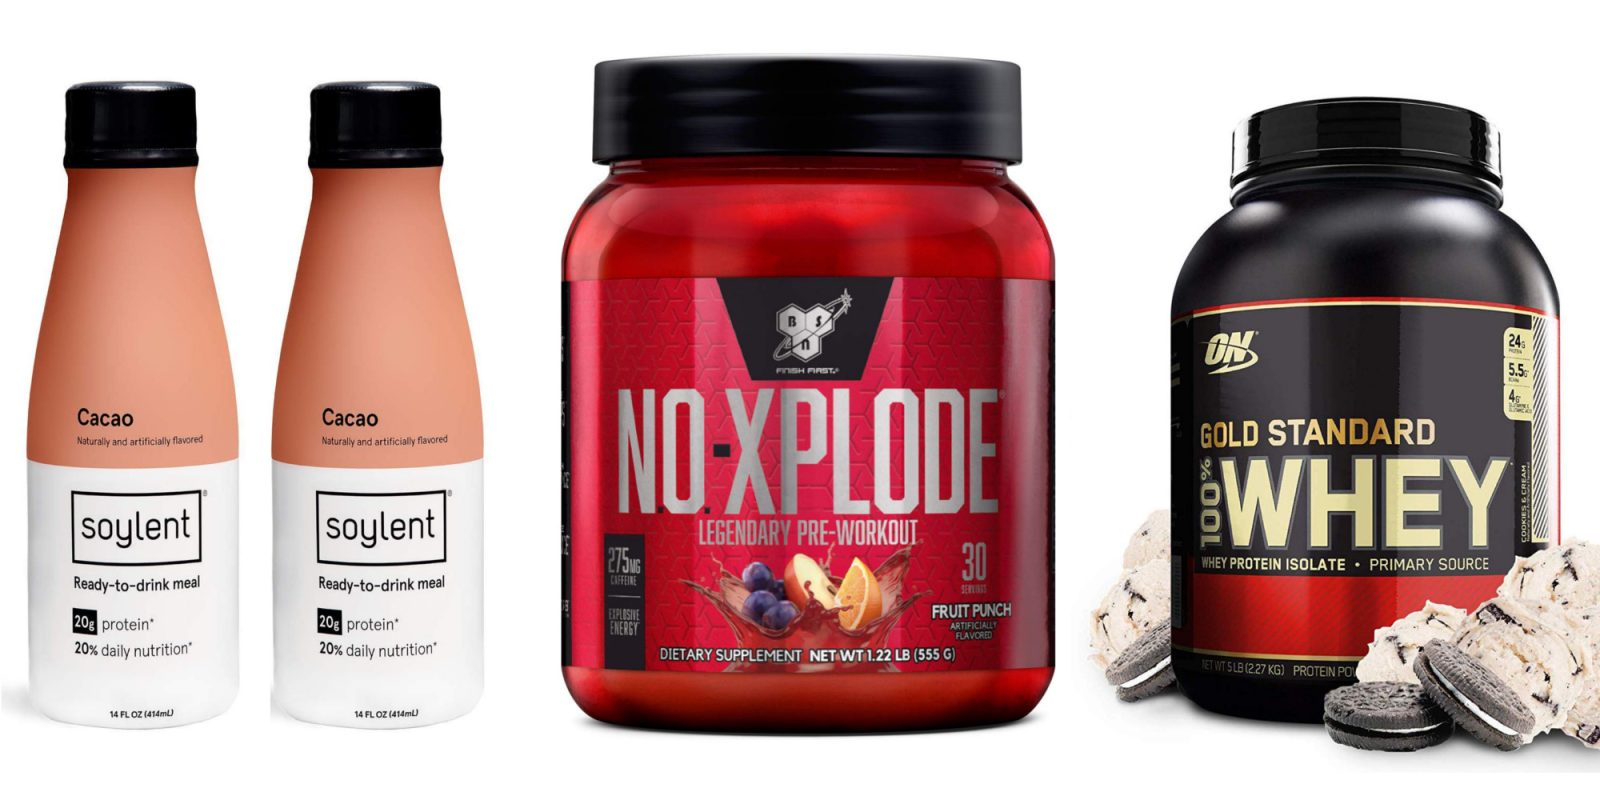 Prime Day Protein Powder Snack Deals From 8 50 On Bsn Soylent Quest More 9to5toys